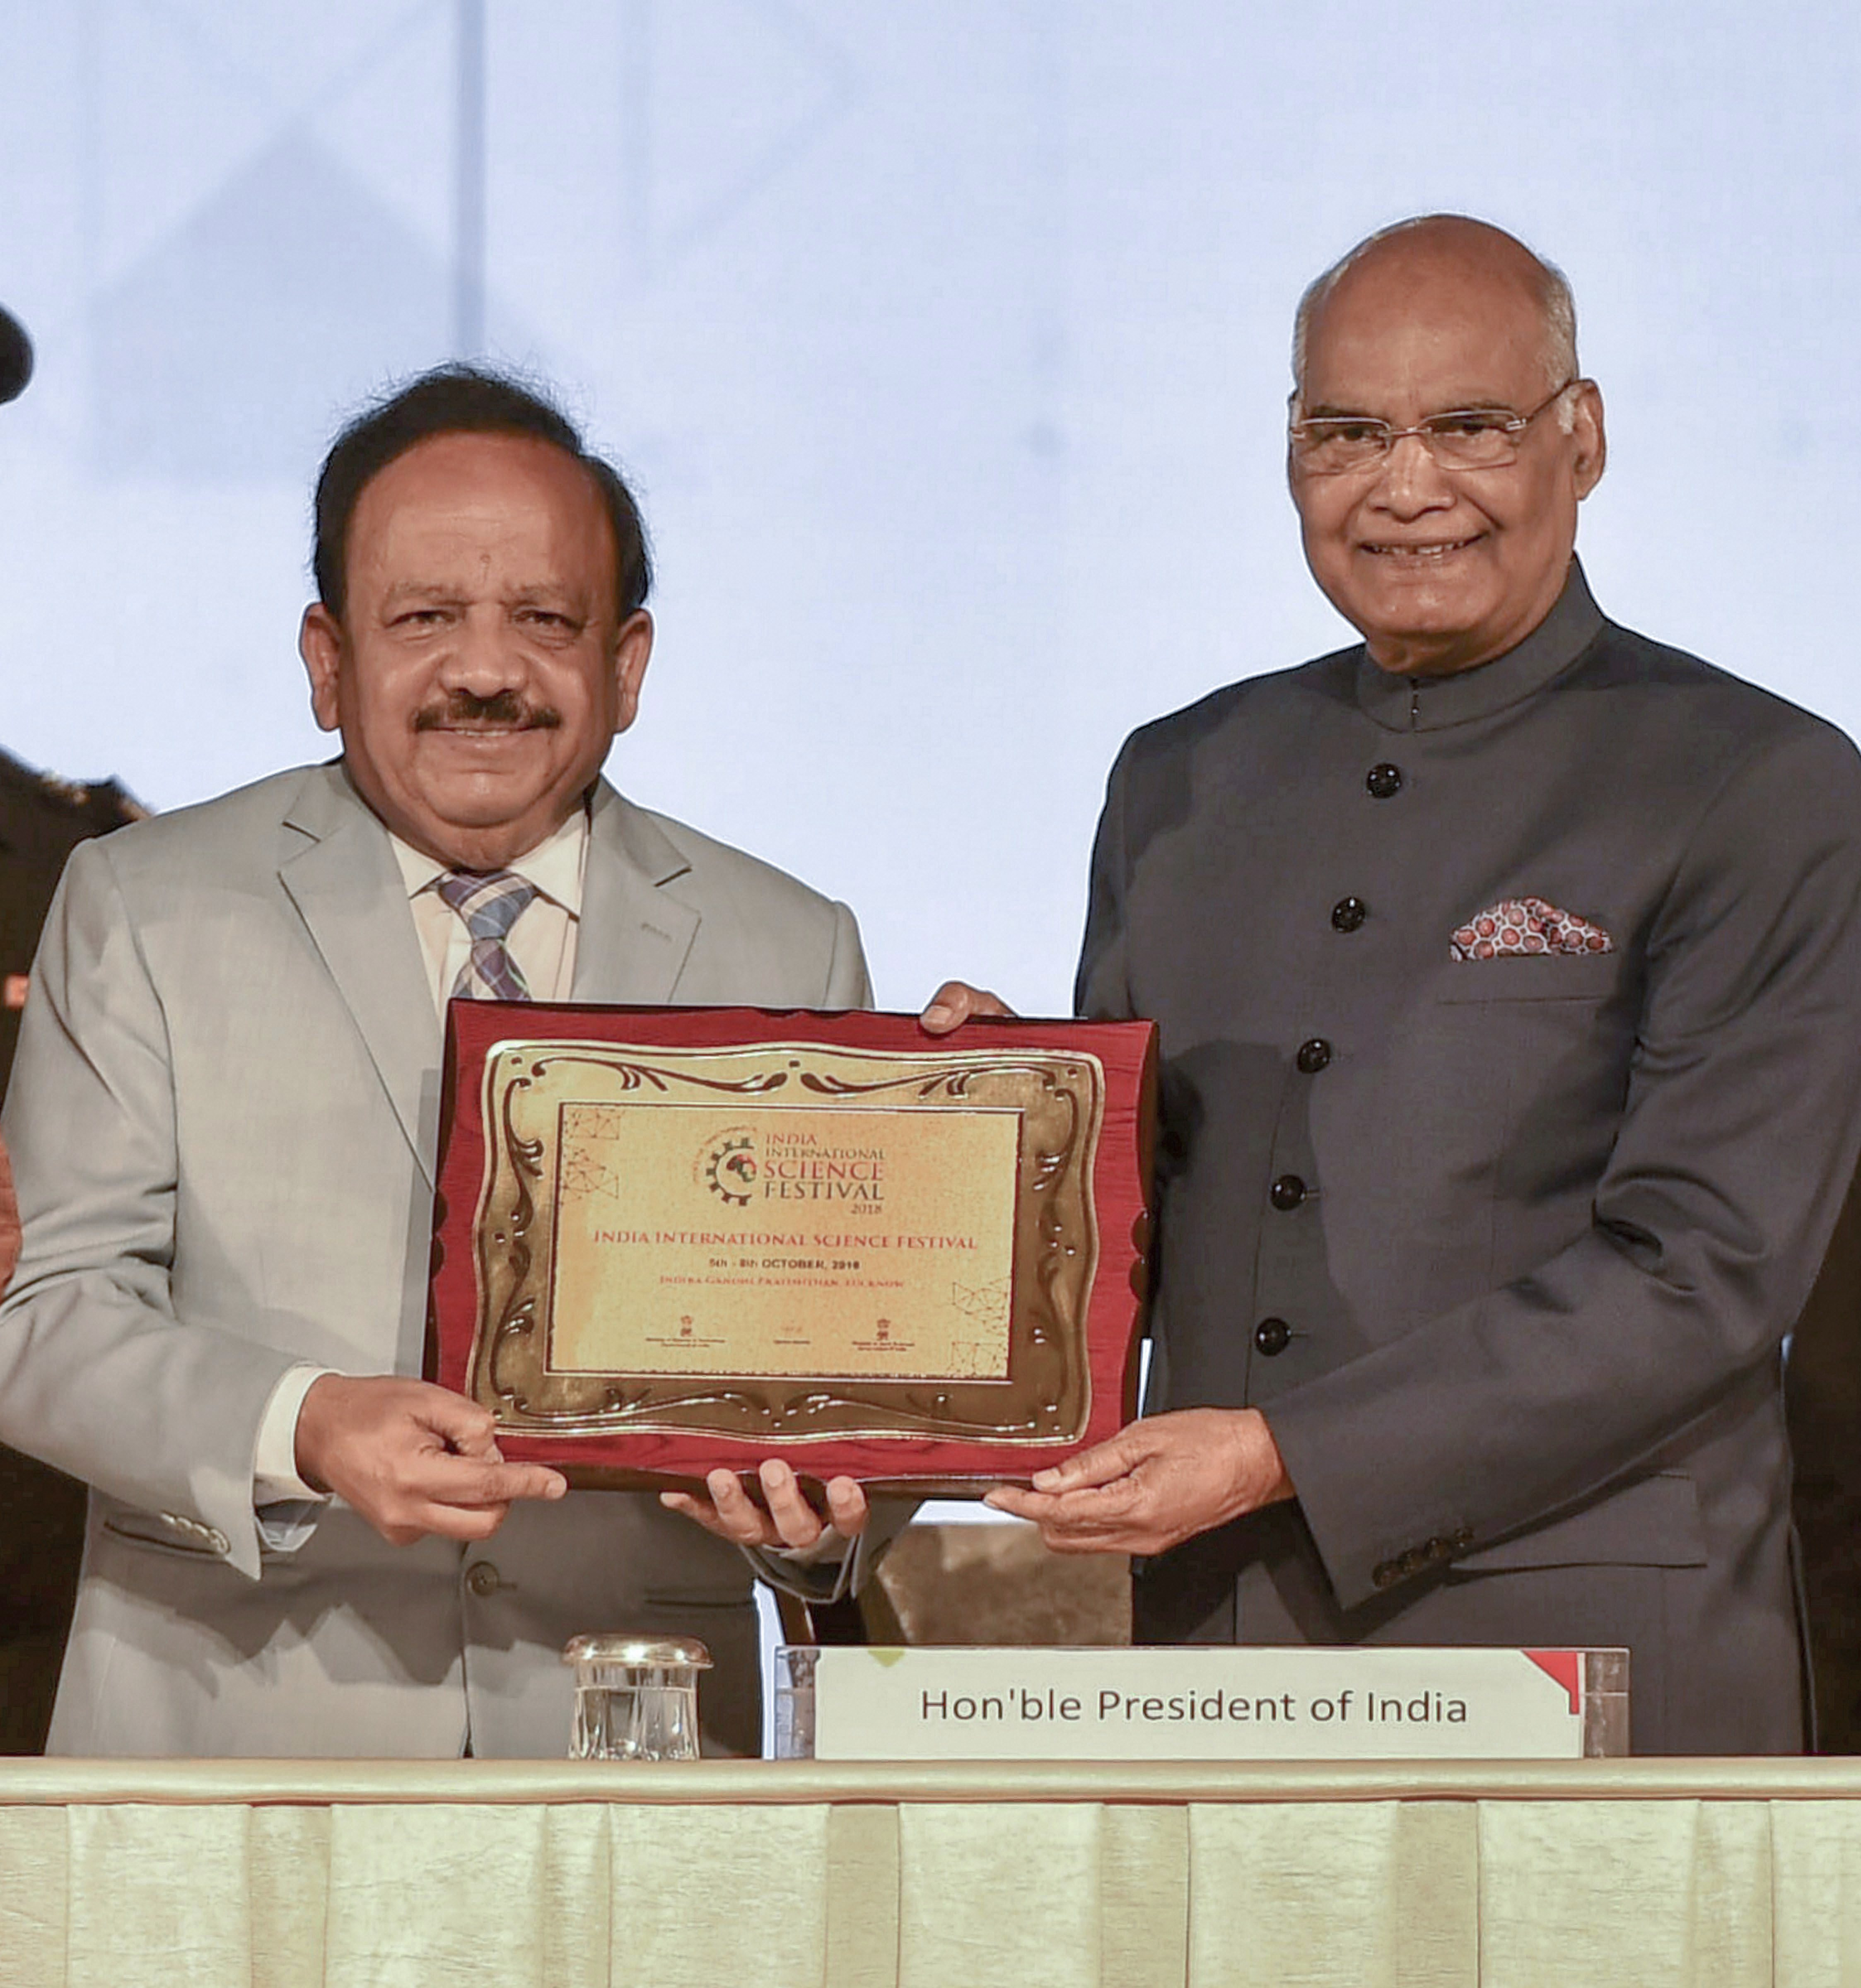 President Ram Nath Kovind with Union Environment Minister Harsh Vardhan at the India International Science Festival (IISF), in Lucknow - PTI